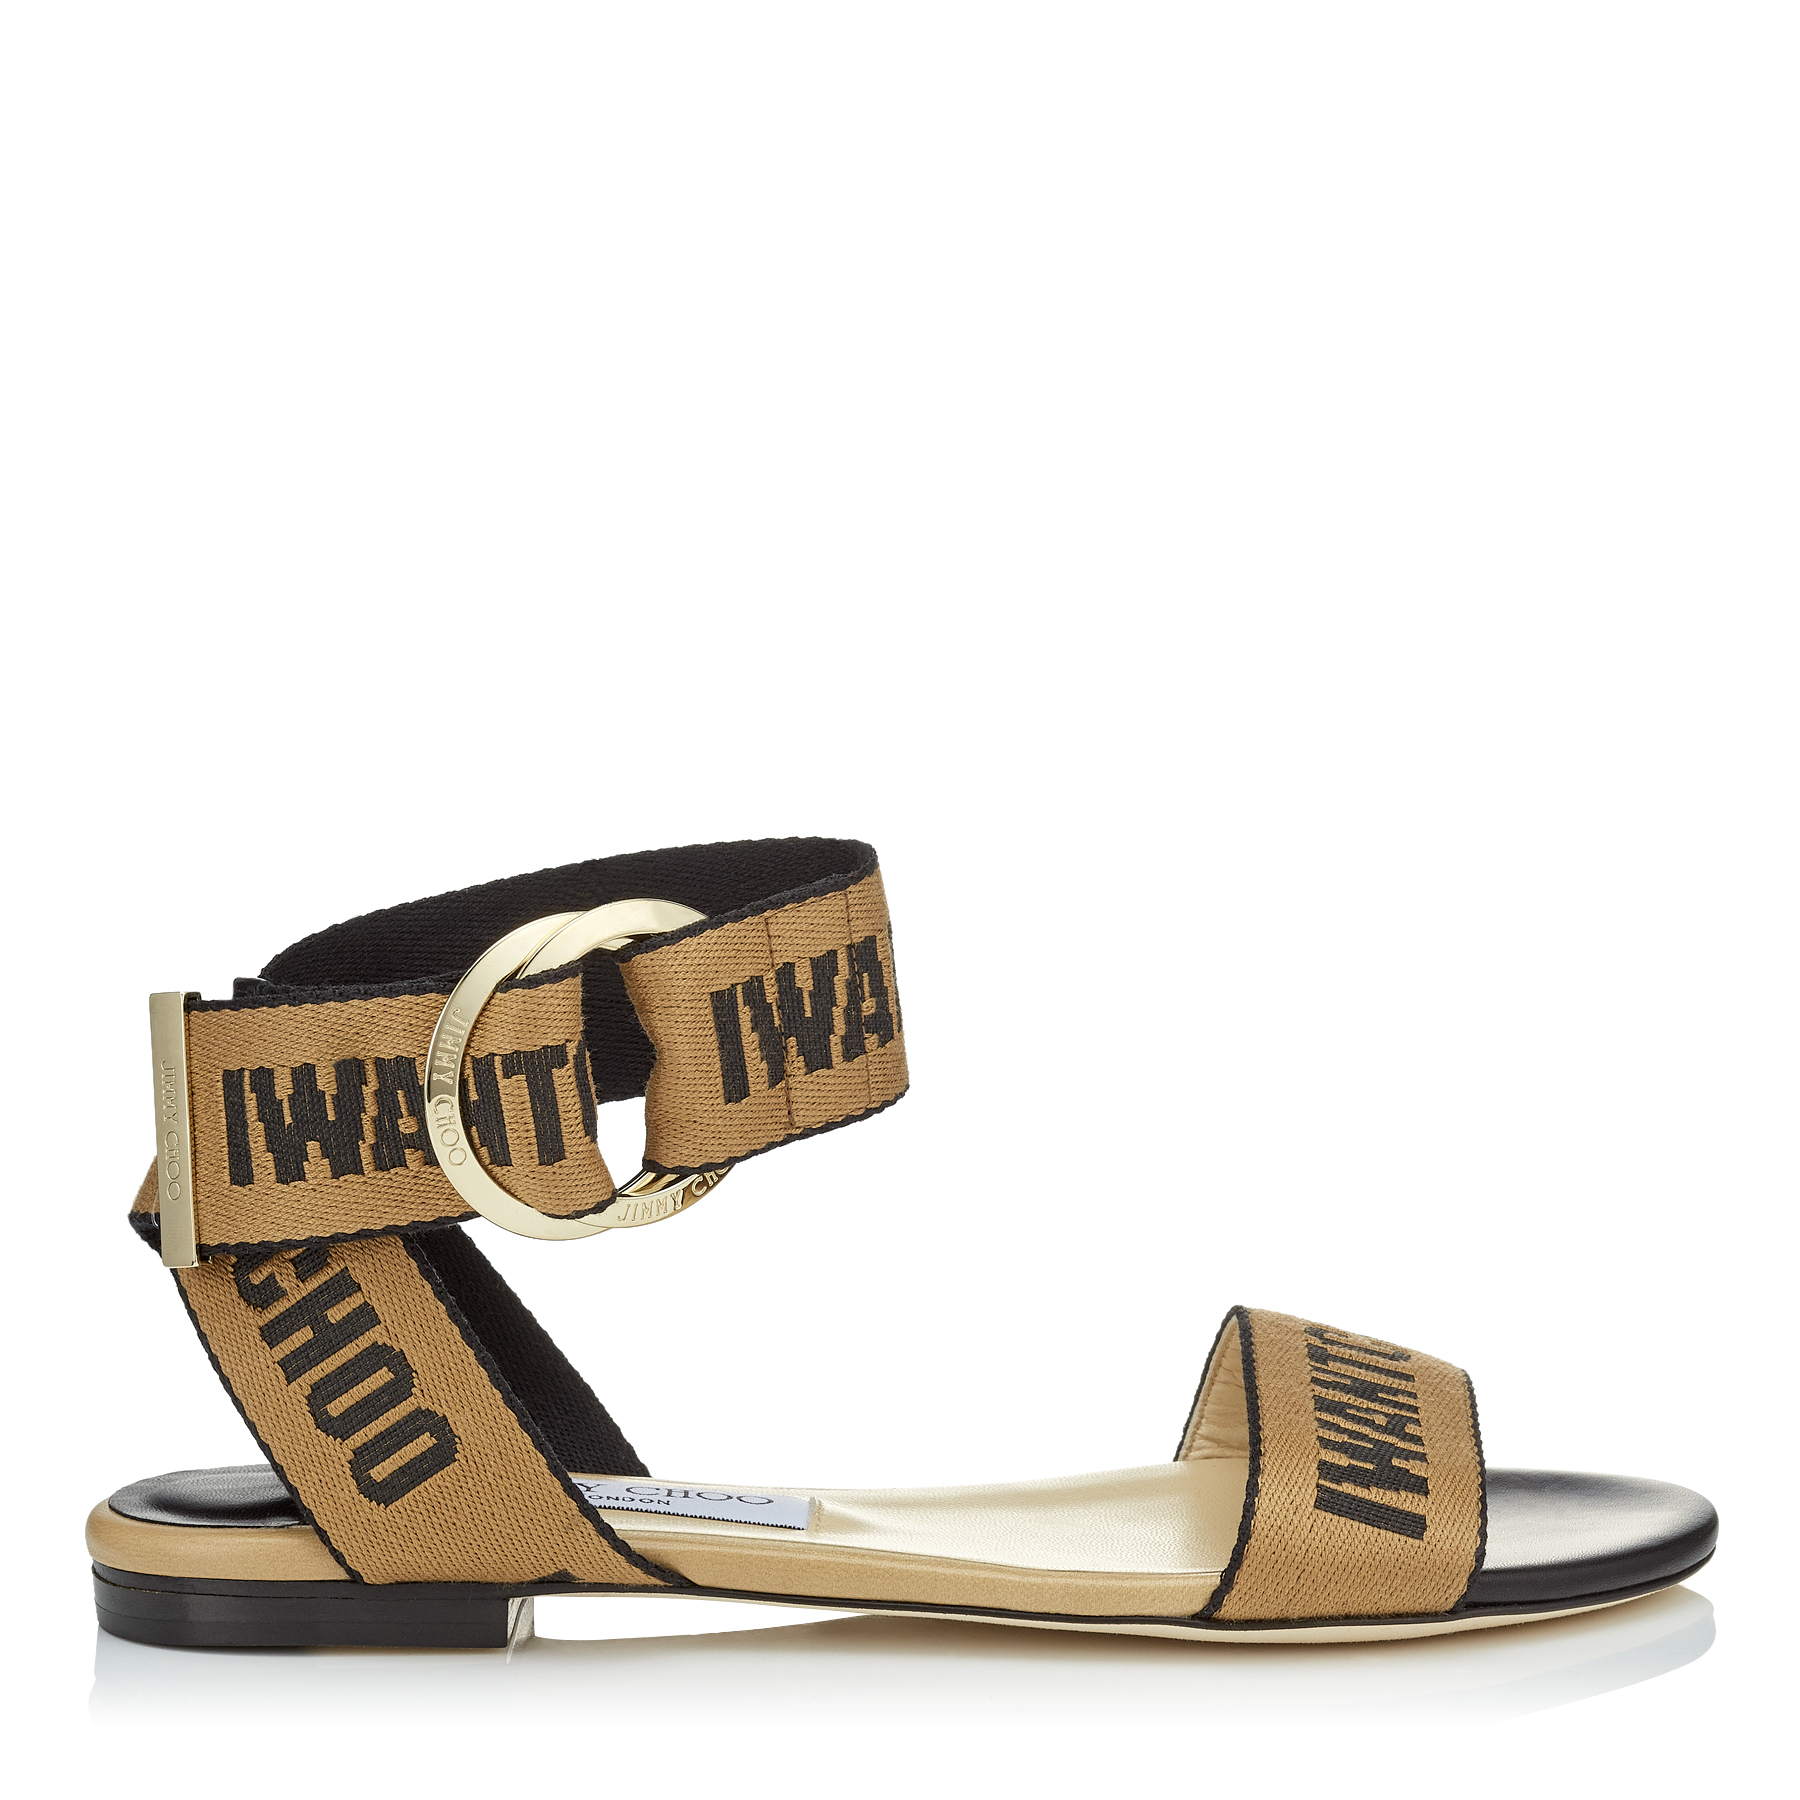 Photo of BREANNE FLAT Black Nappa Leather Sandals with Nude and Black Logo Tape by Jimmy Choo womens shoes - buy Jimmy Choo footwear online